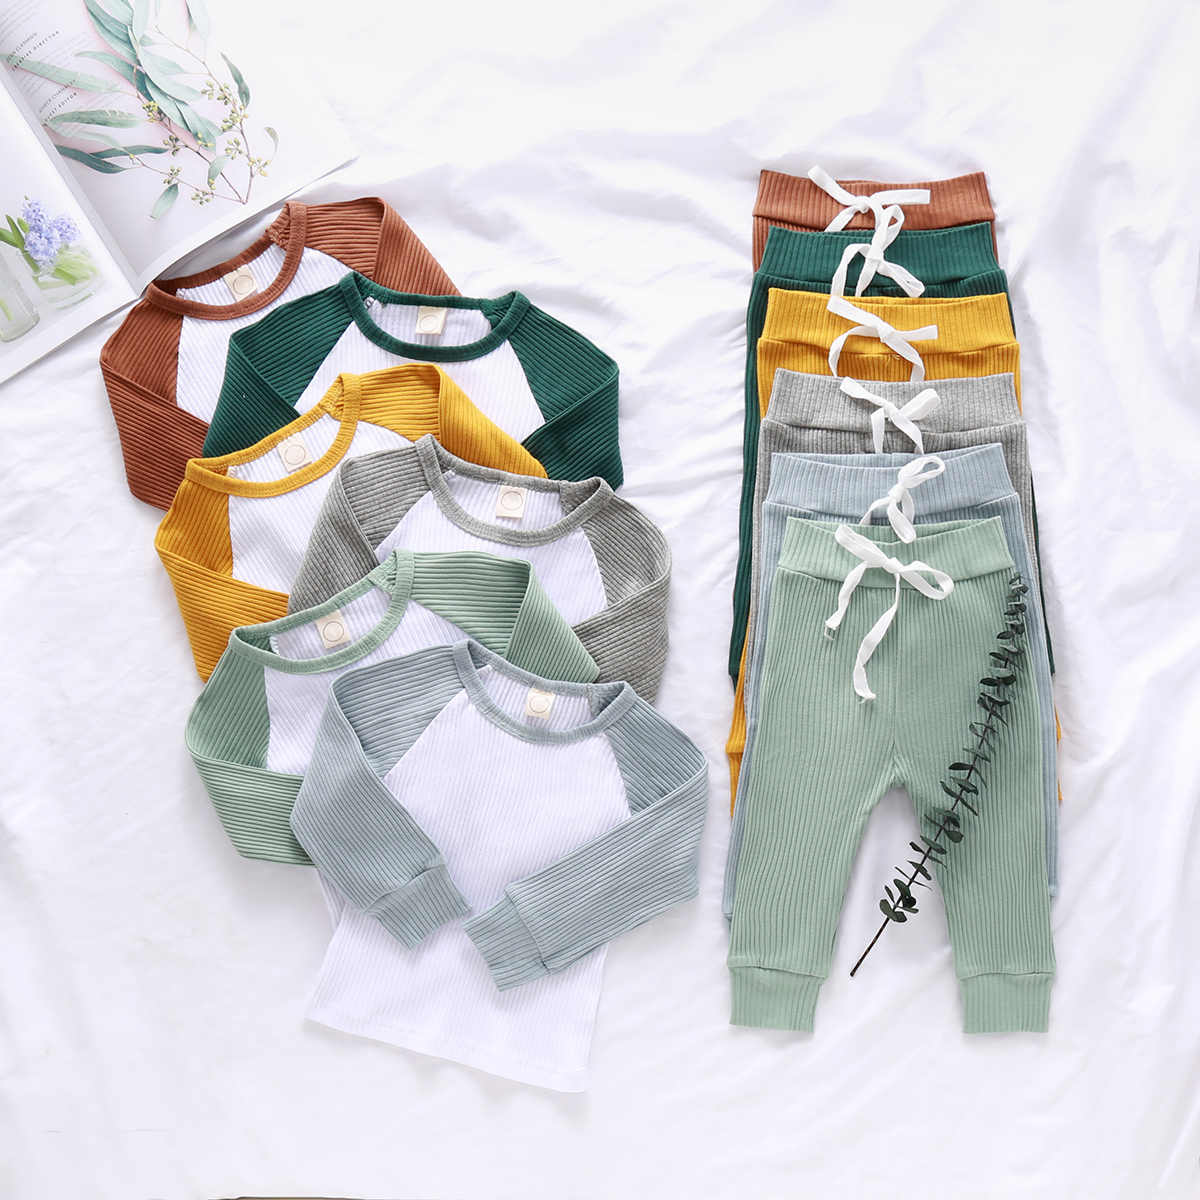 2Pcs Newest Cotton Infant Baby Girls Boys Clothes Set Ribbed Stripe Long Sleeve Tops+Pants Outfits Suit Toddler Casual Clothing